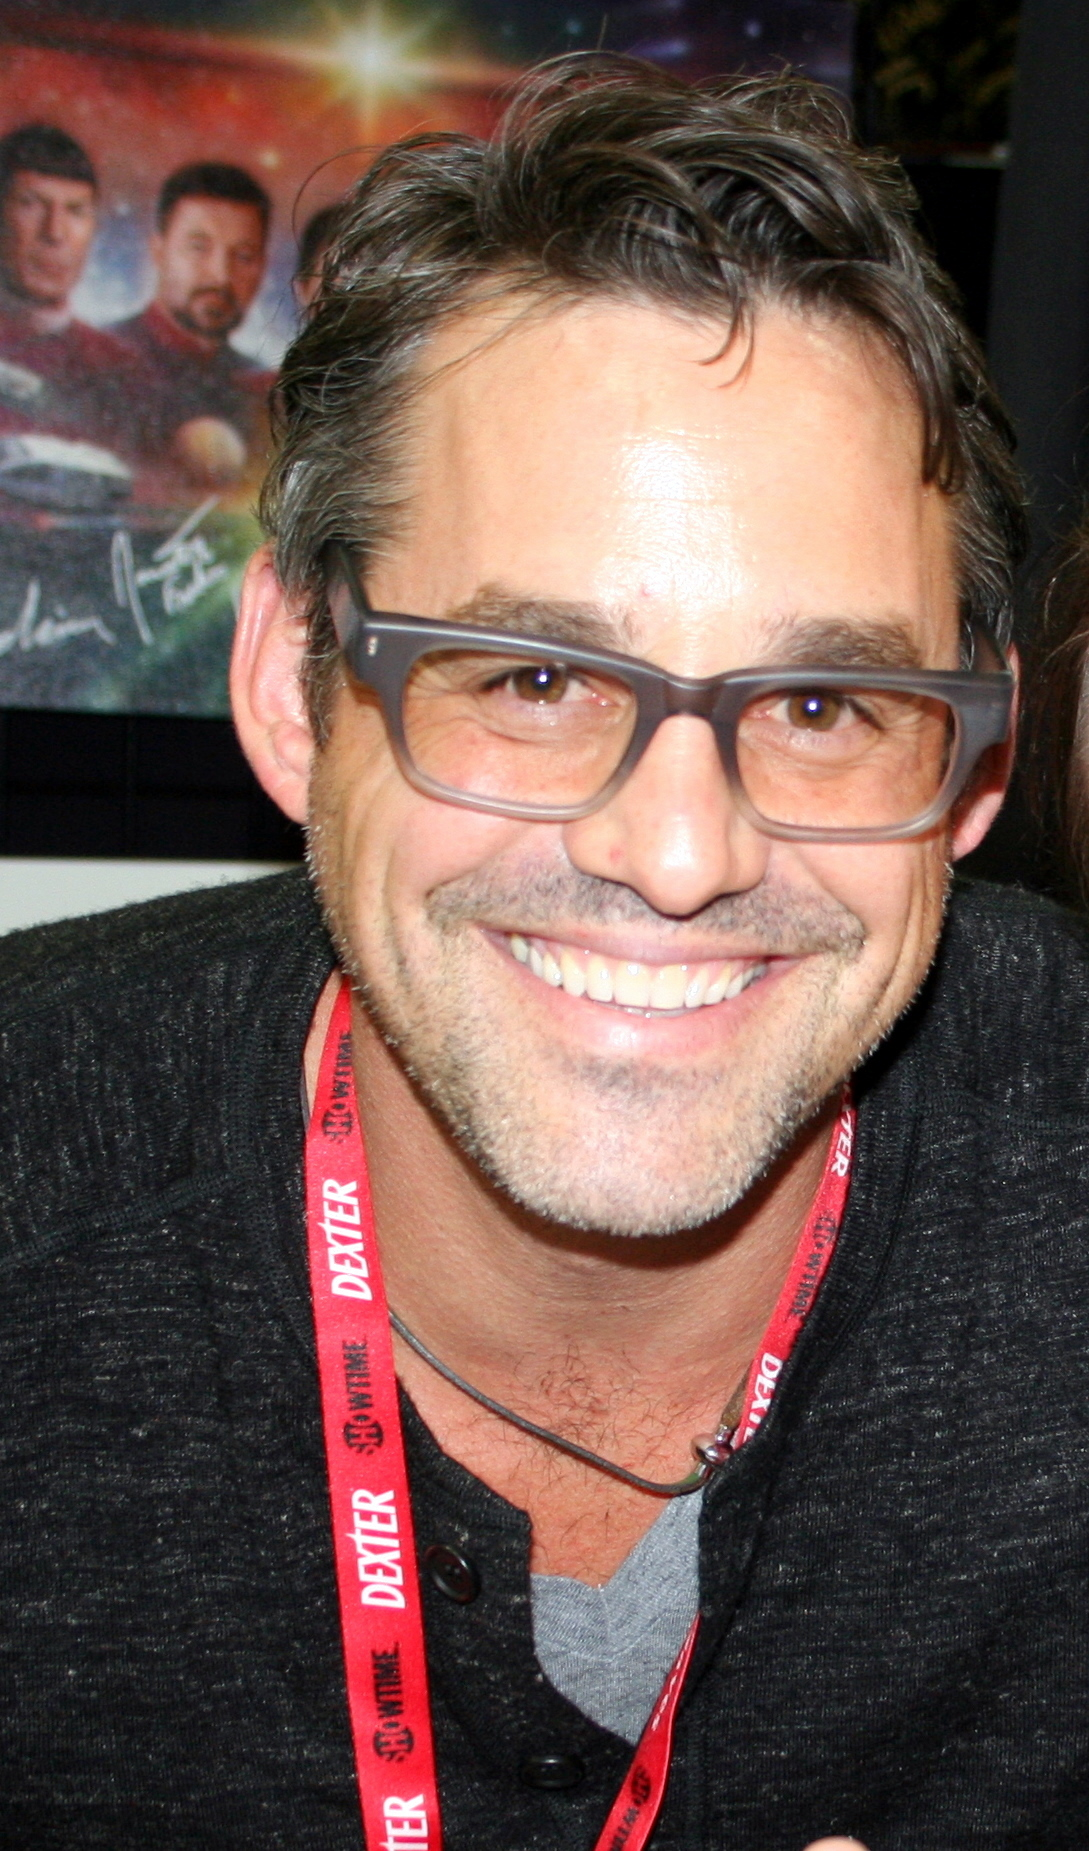 nicholas brendon arrestednicholas brendon instagram, nicholas brendon twitter, nicholas brendon wiki, nicholas brendon dr phil, nicholas brendon buffy, nicholas brendon and kelly donovan, nicholas brendon criminal minds, nicholas brendon imdb, nicholas brendon net worth, nicholas brendon twin brother, nicholas brendon arrested, nicholas brendon girlfriend, nicholas brendon movies and tv shows, nicholas brendon gay, nicholas brendon shirtless